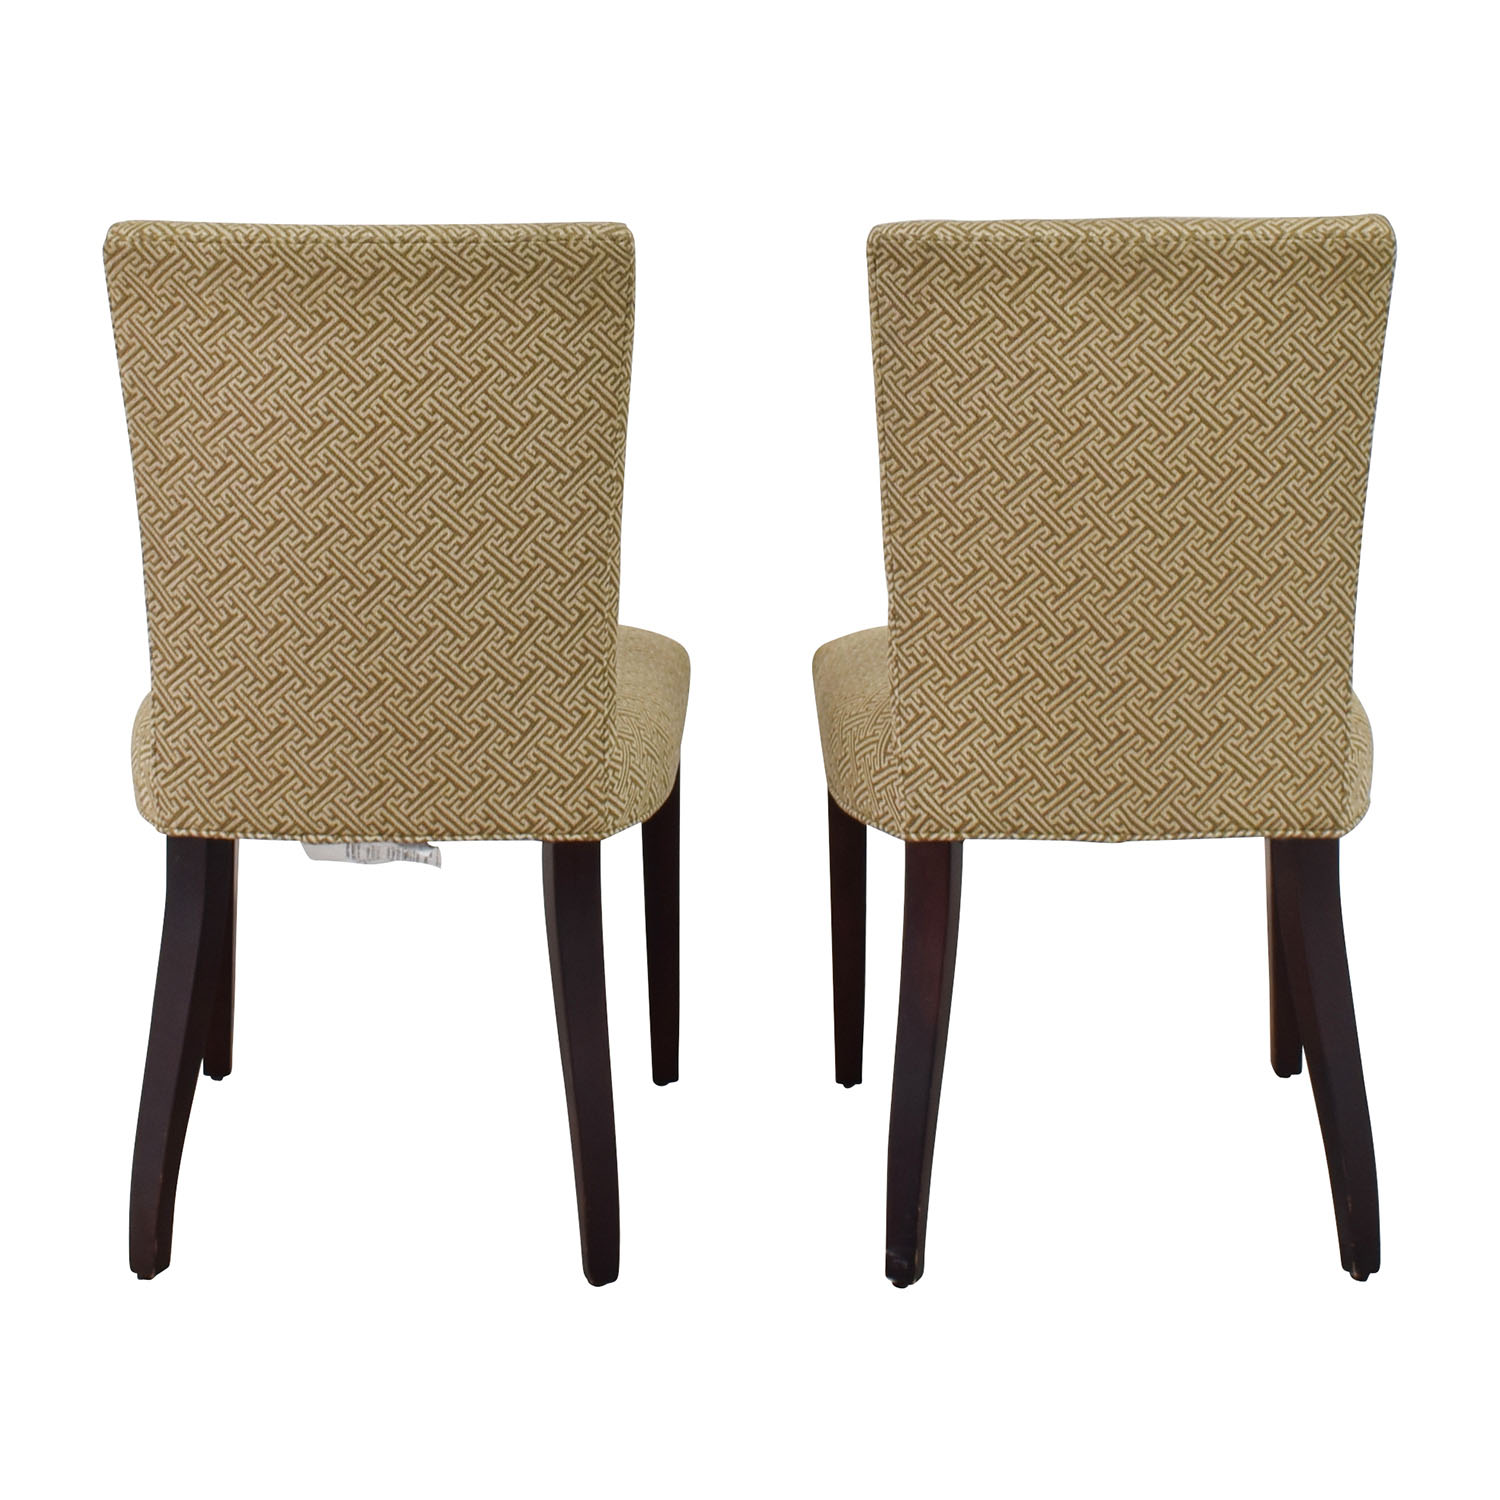 Room & Board Room & Board Ansel Beige Dining Chairs Sofas